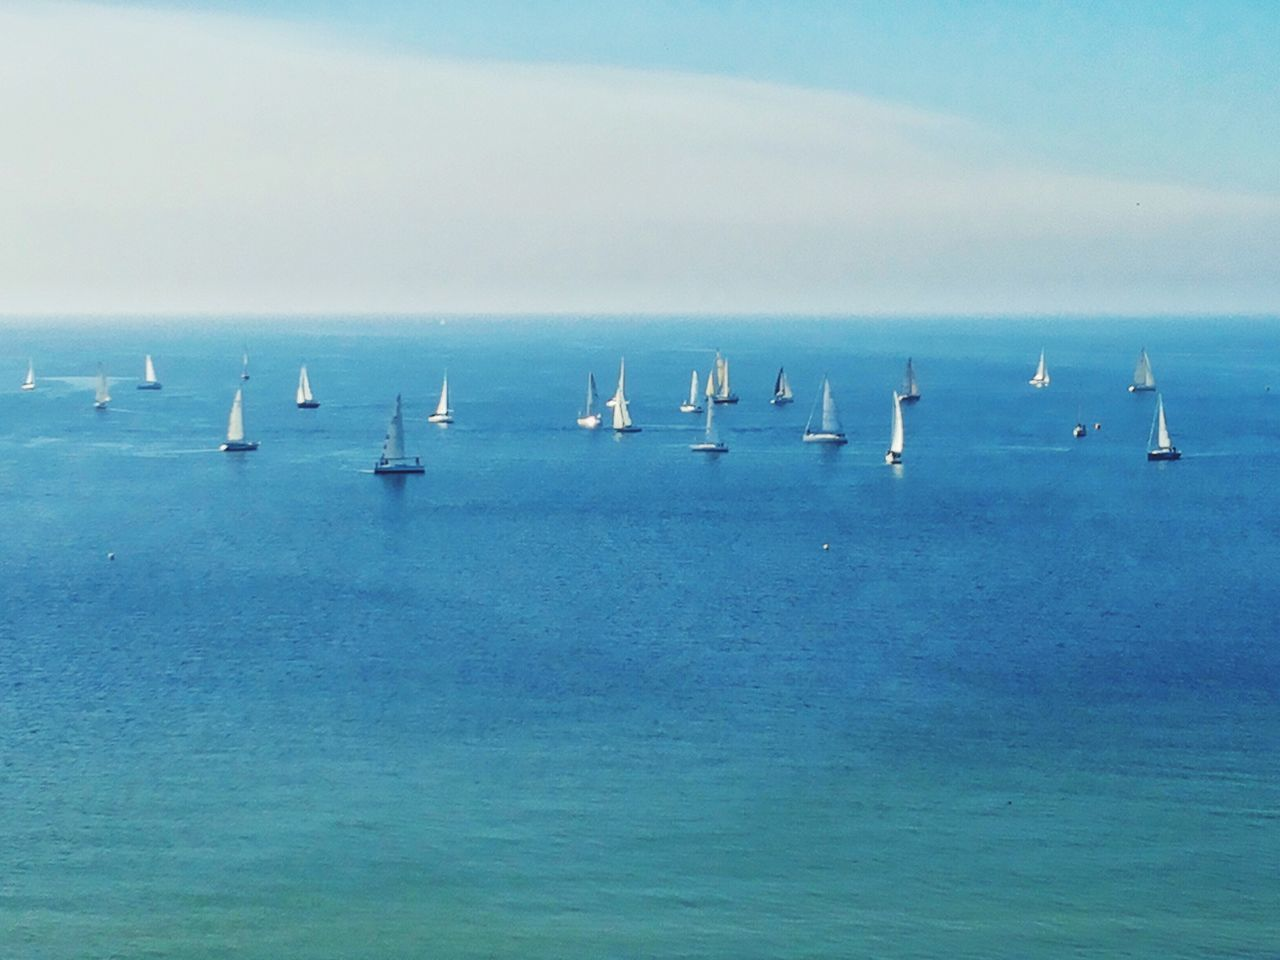 Sea Scenics Beauty In Nature Water Nature Horizon Over Water Sky Outdoors Regatta Day Animals In The Wild Tranquility No People Sailing Sailboat Sailing Ship Sailboats Ocean Blue Sea